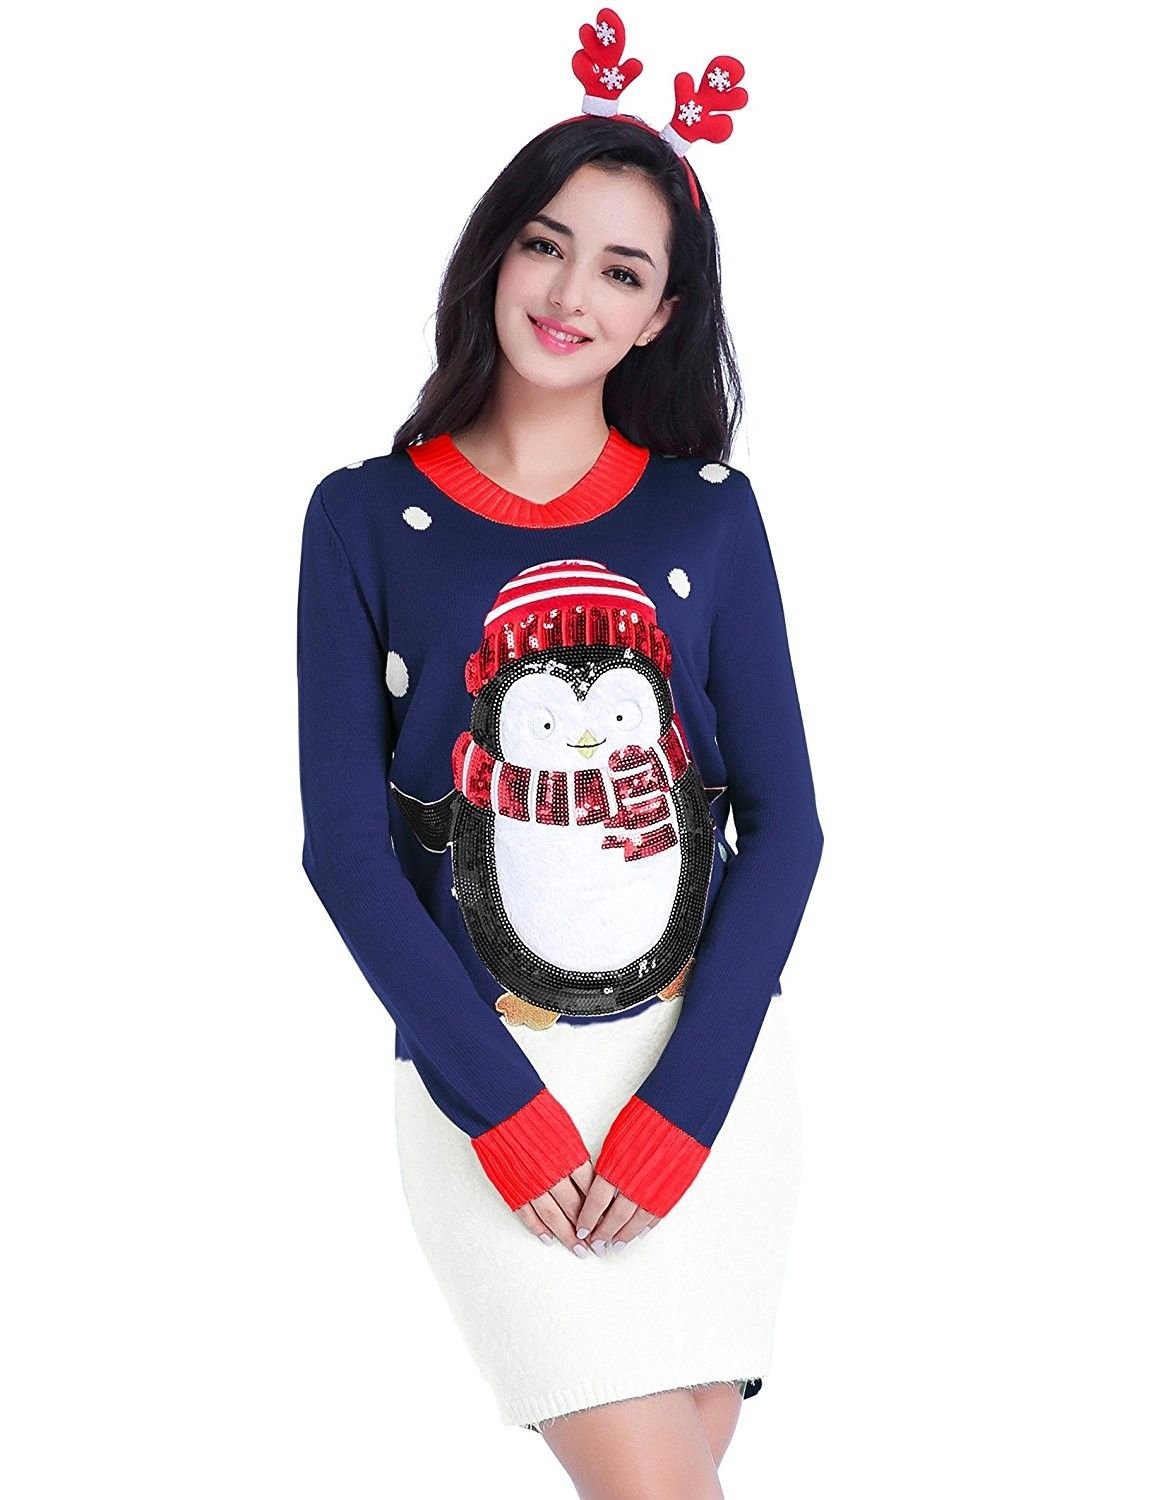 7461fef6 Women's Clothing, Sweaters, Pullovers, Women Christmas Sweater- Ugly  Shining Penguin Xmas Sweater Knit Jumper Dress - Cute Penguin Navy -  CU1857GUG6R #style ...